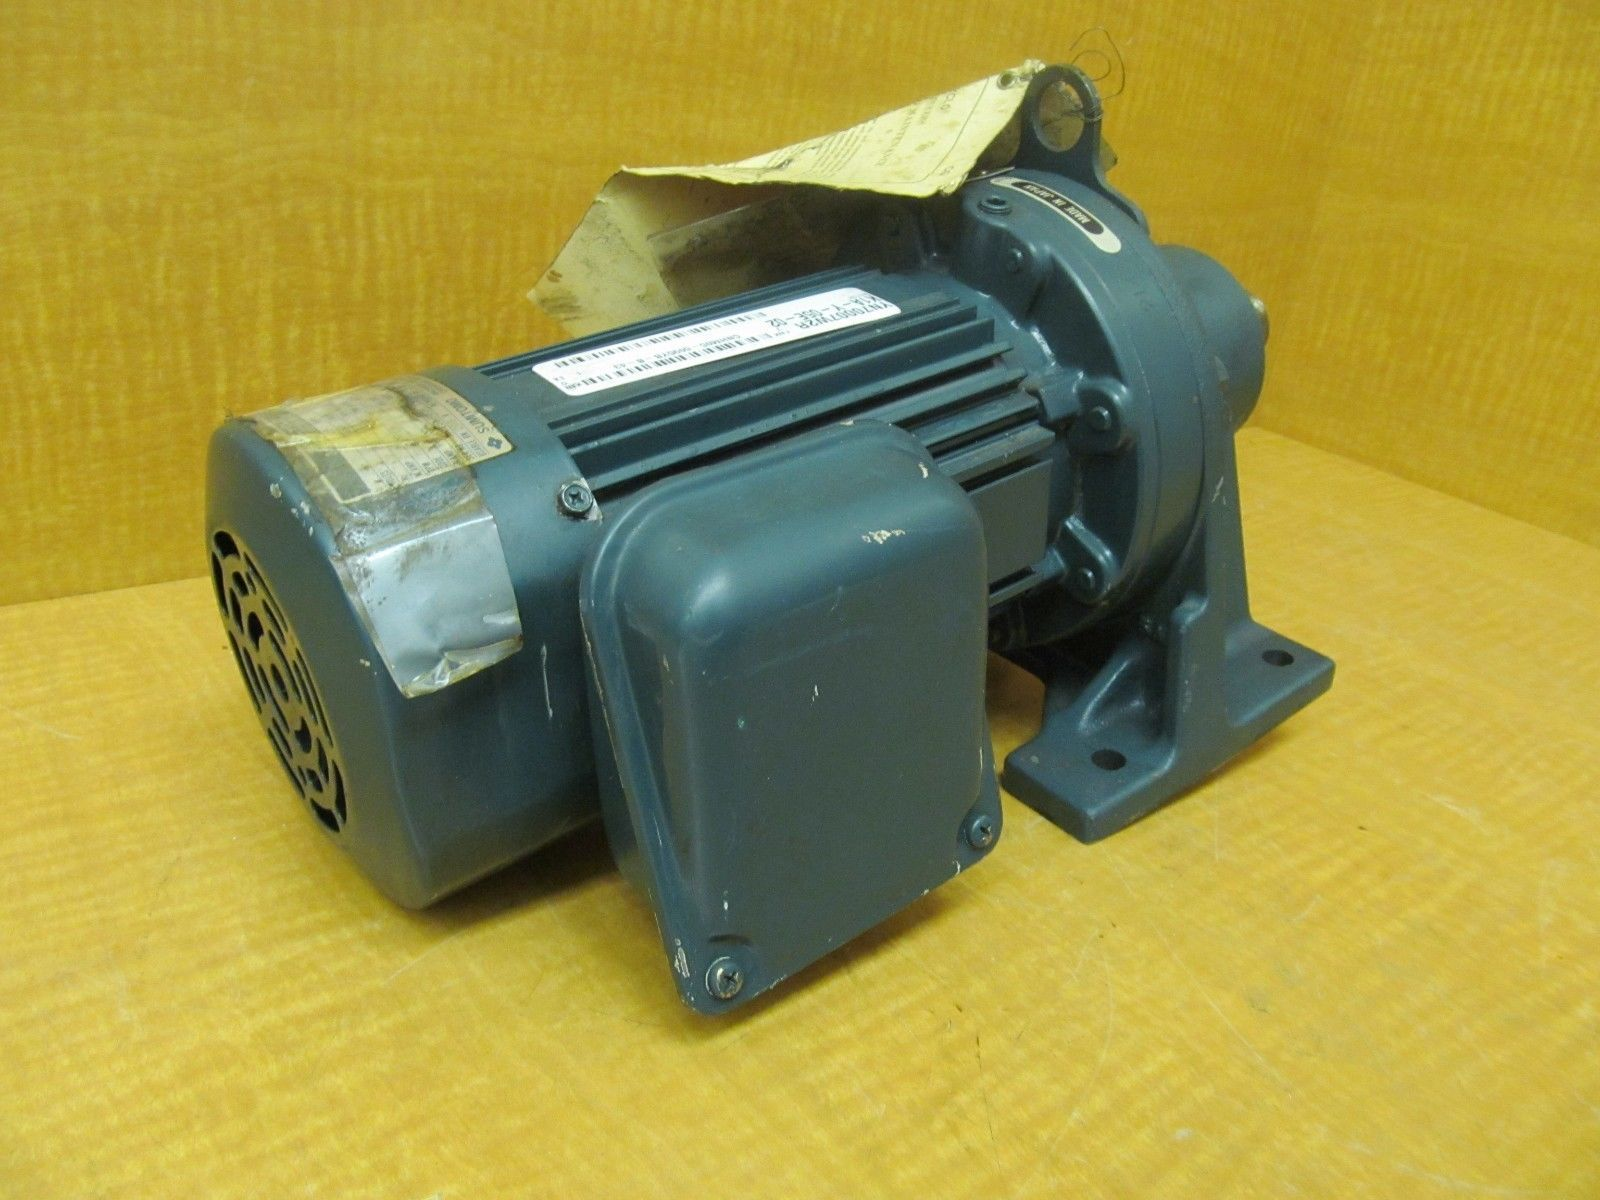 New Sumitomo Cyclo Motor Cnhm05 6095yb B 43 Hp 1 4 4p Ratio 43 Ebay